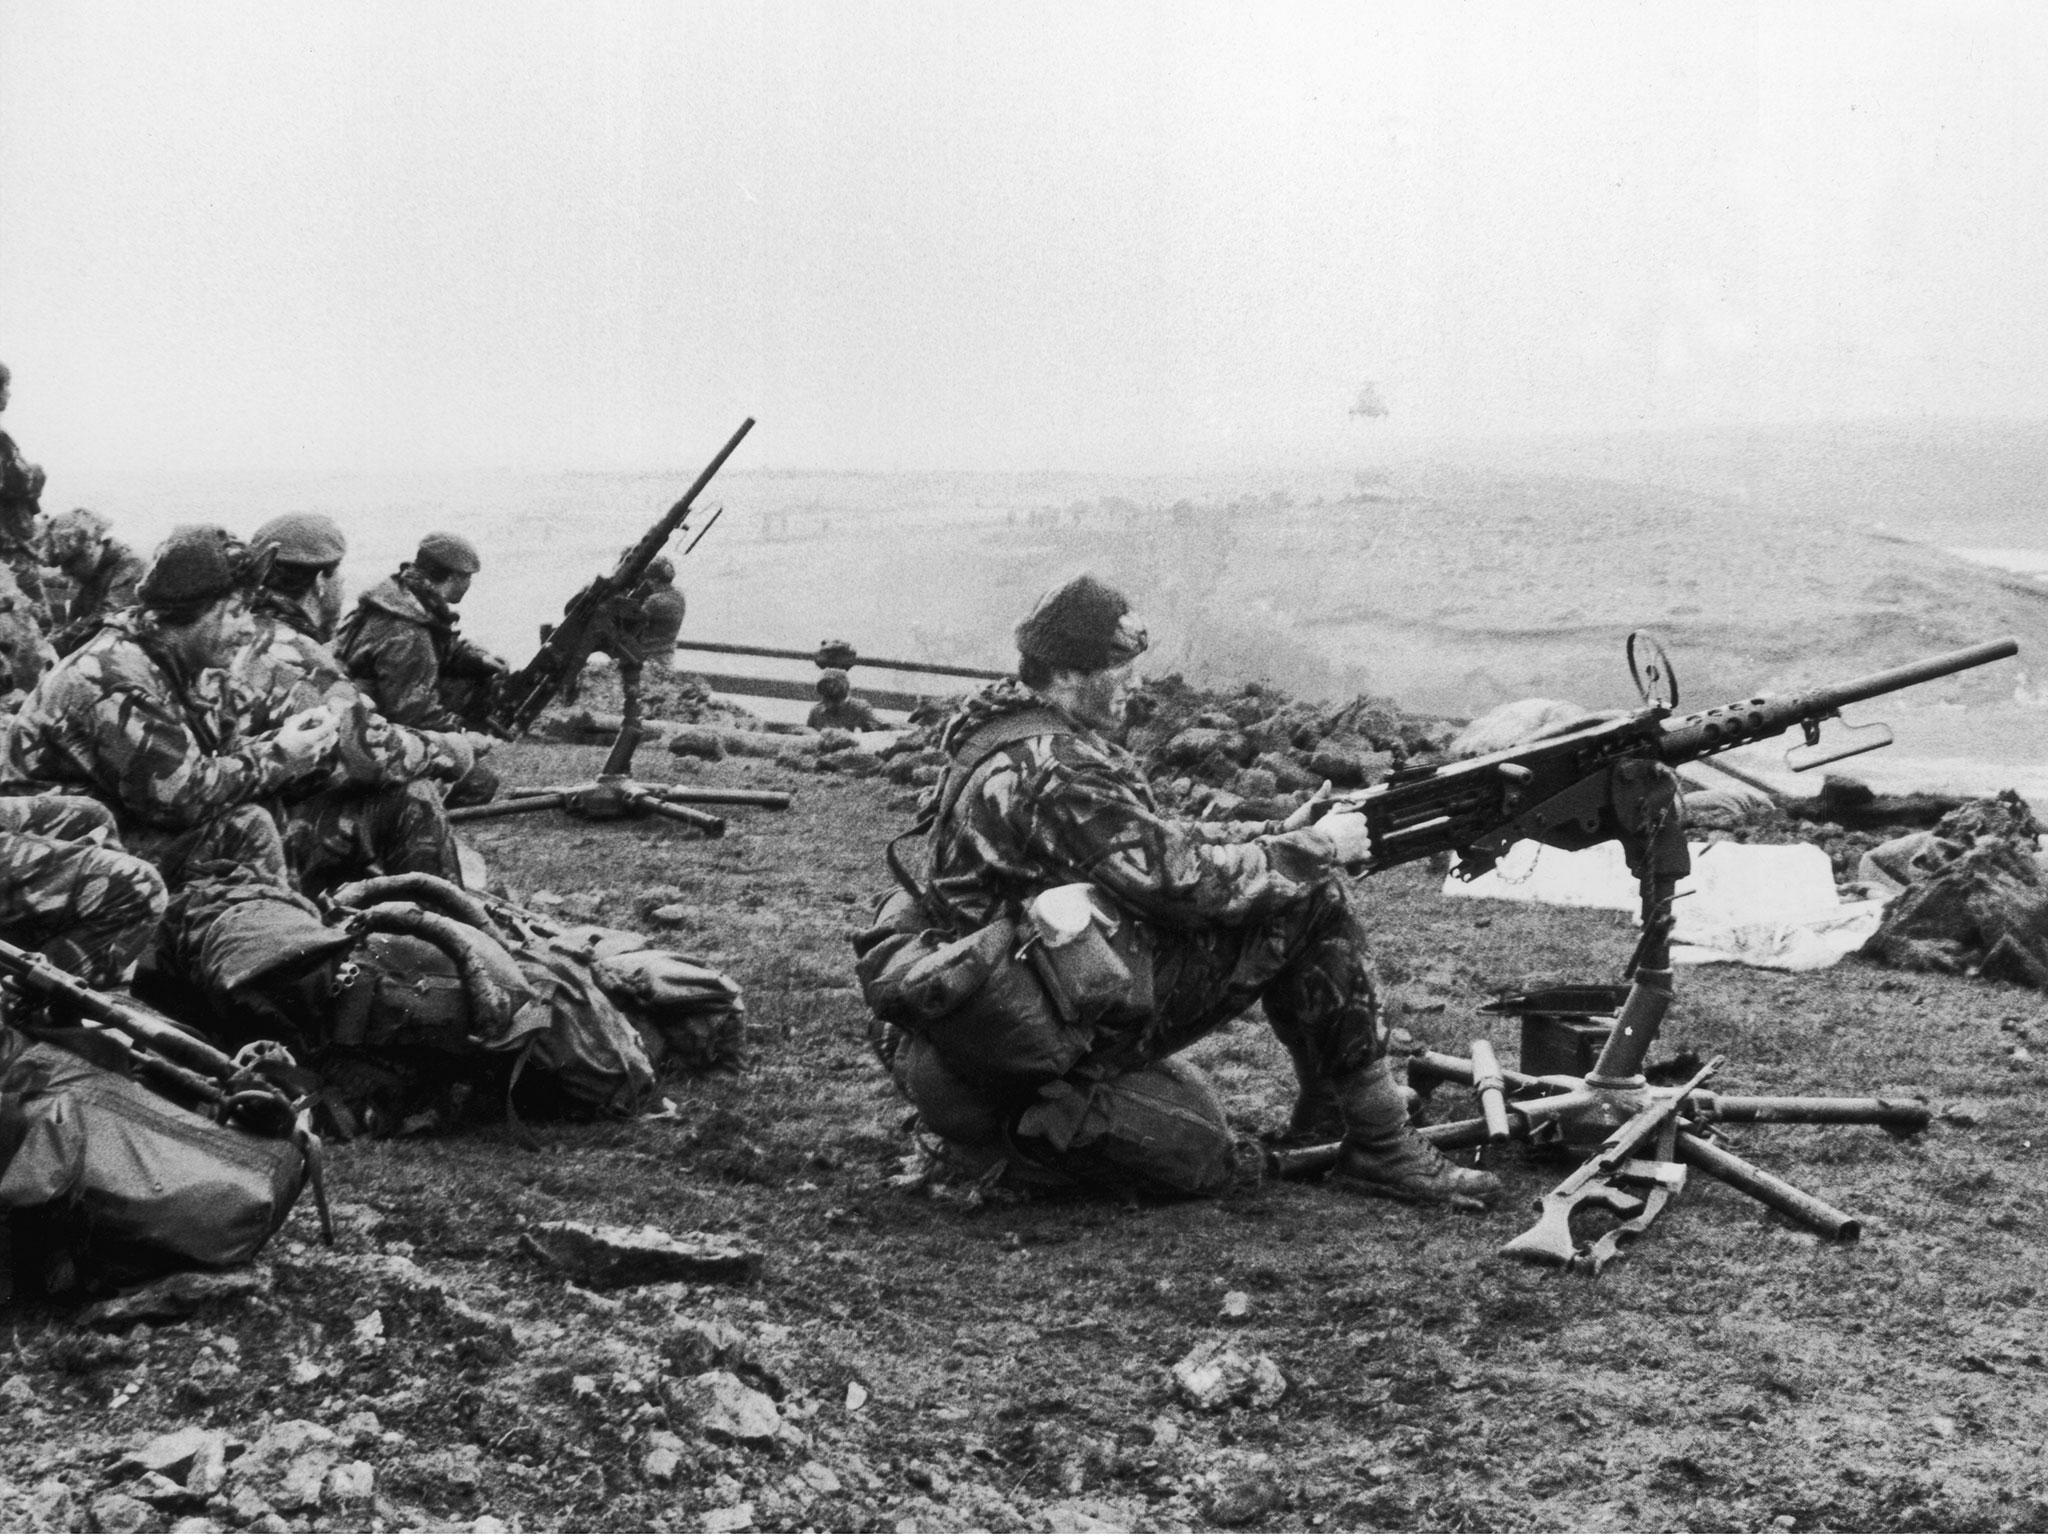 What are you thinking in the steel coffin? Falkland war